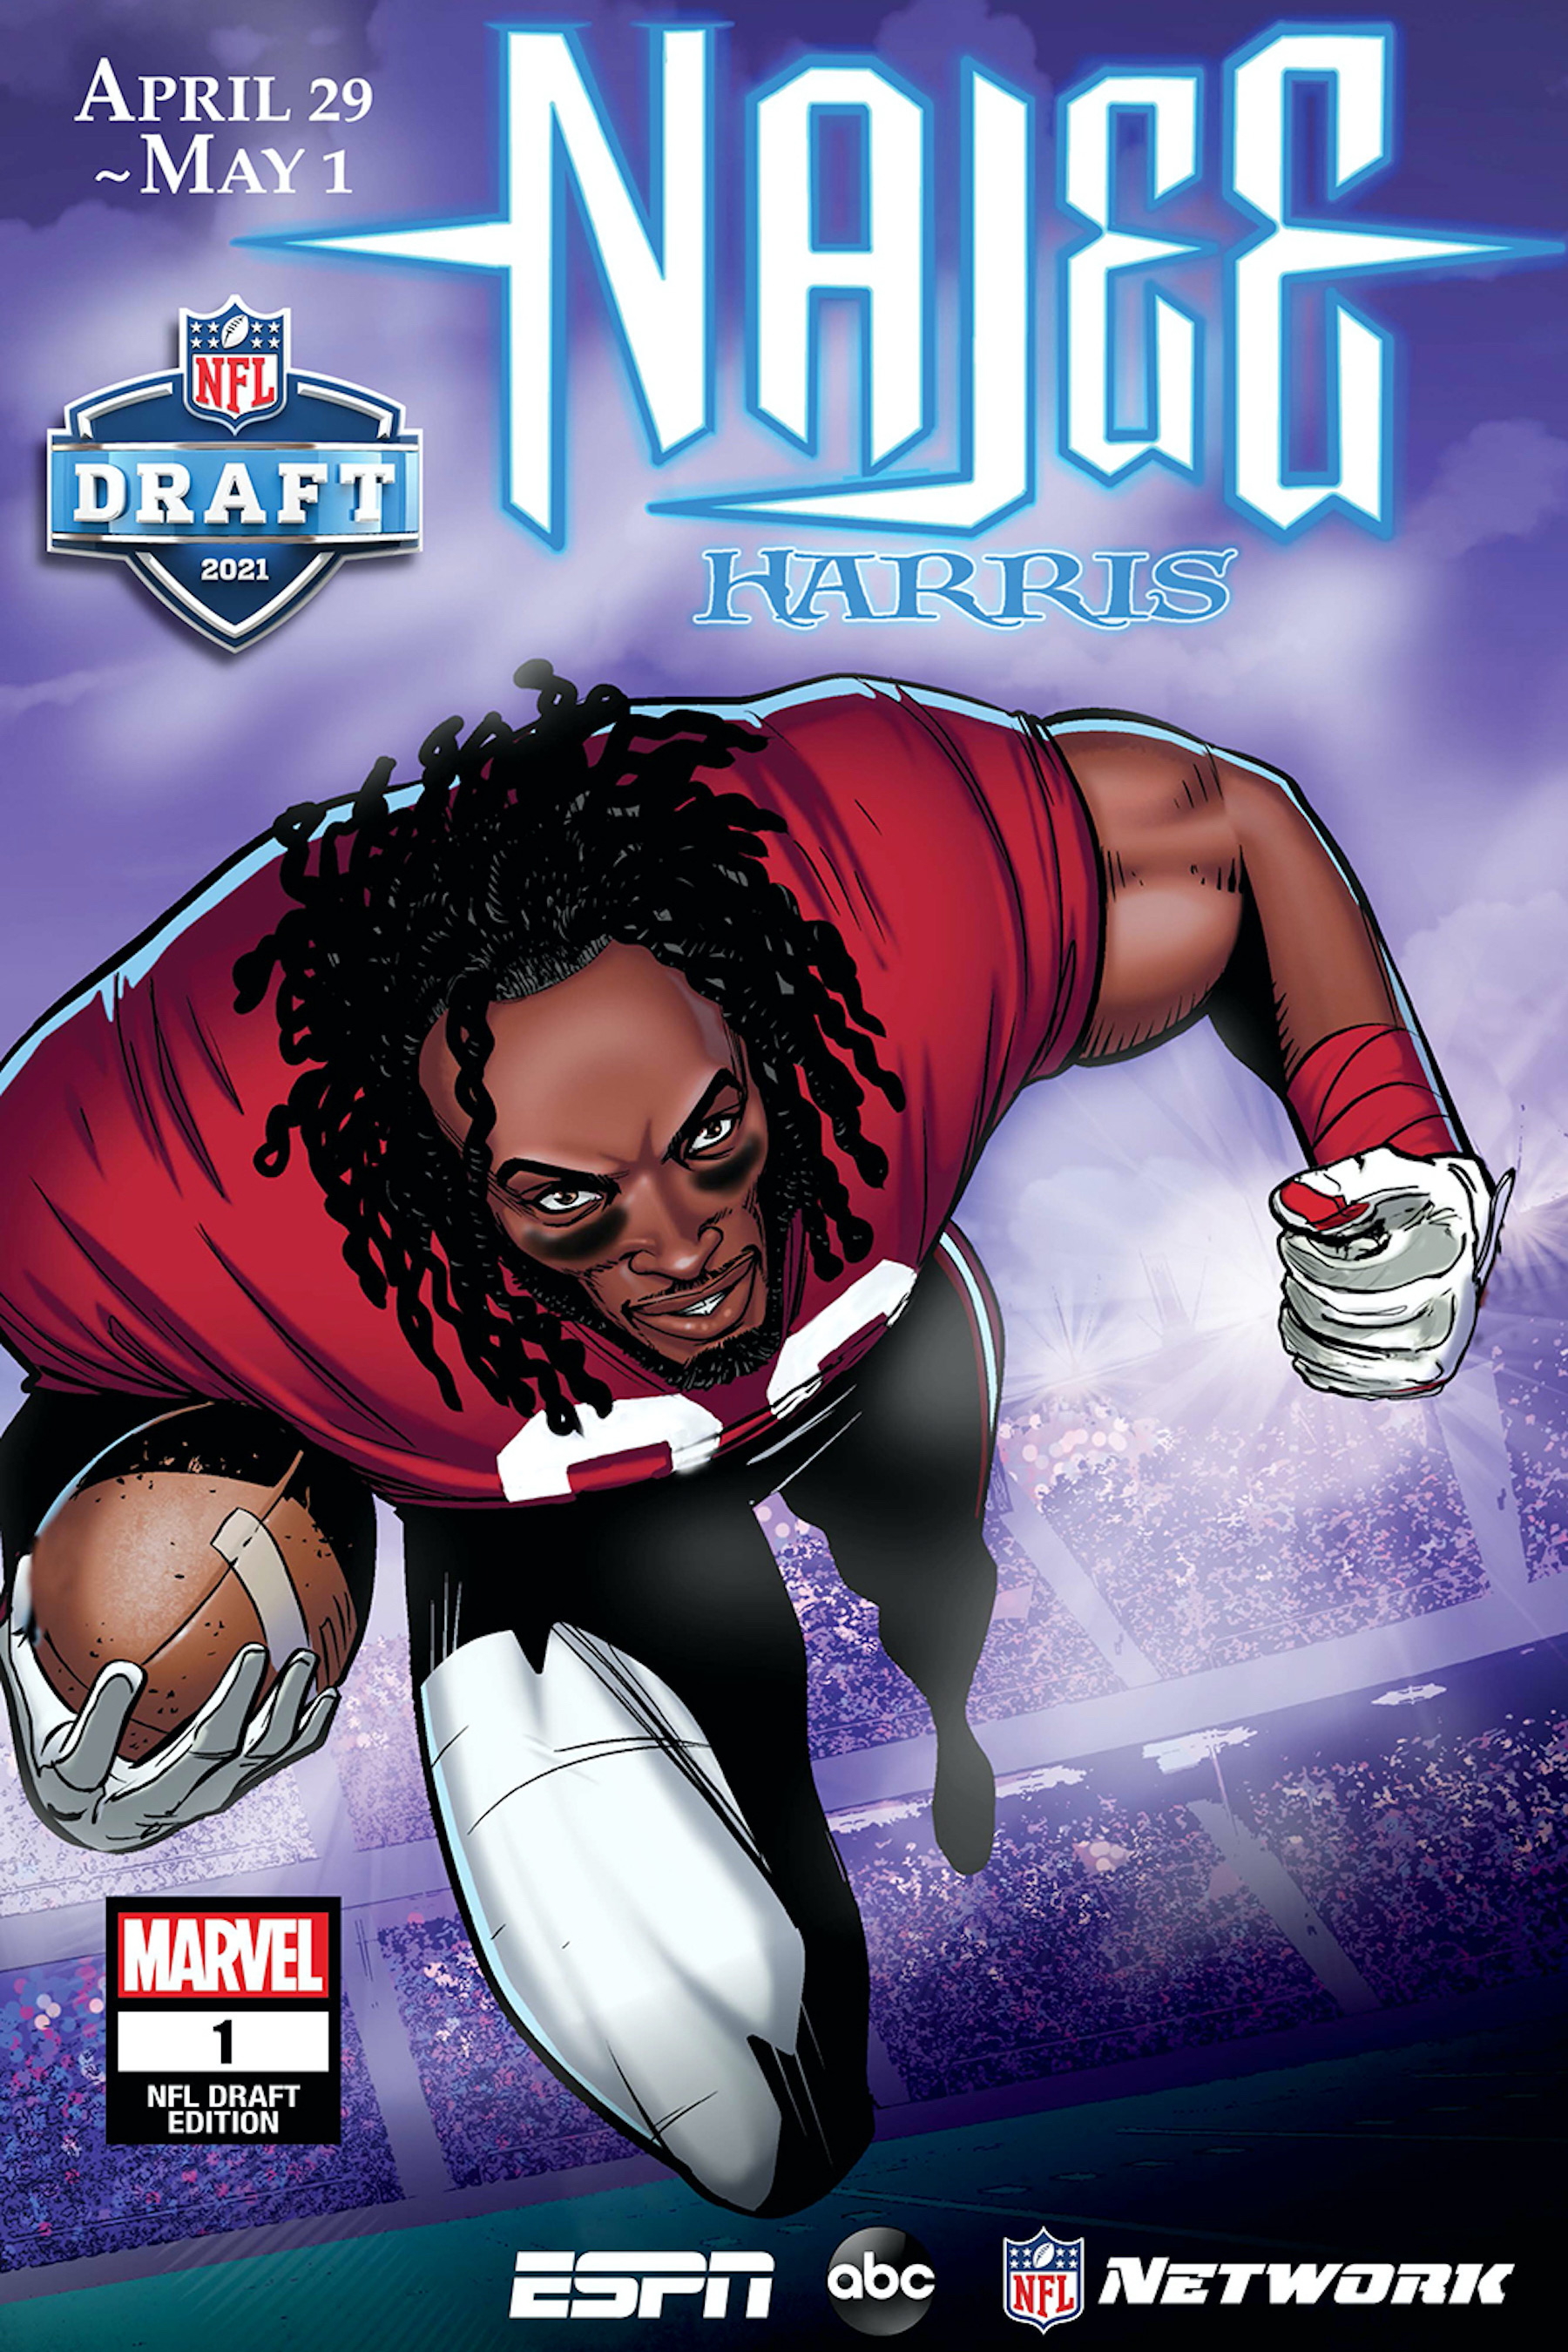 Najee Harris by Ray Anthony Height and Wil Quintana, after STRANGE TALES: BLADE #3 by Bart Sears